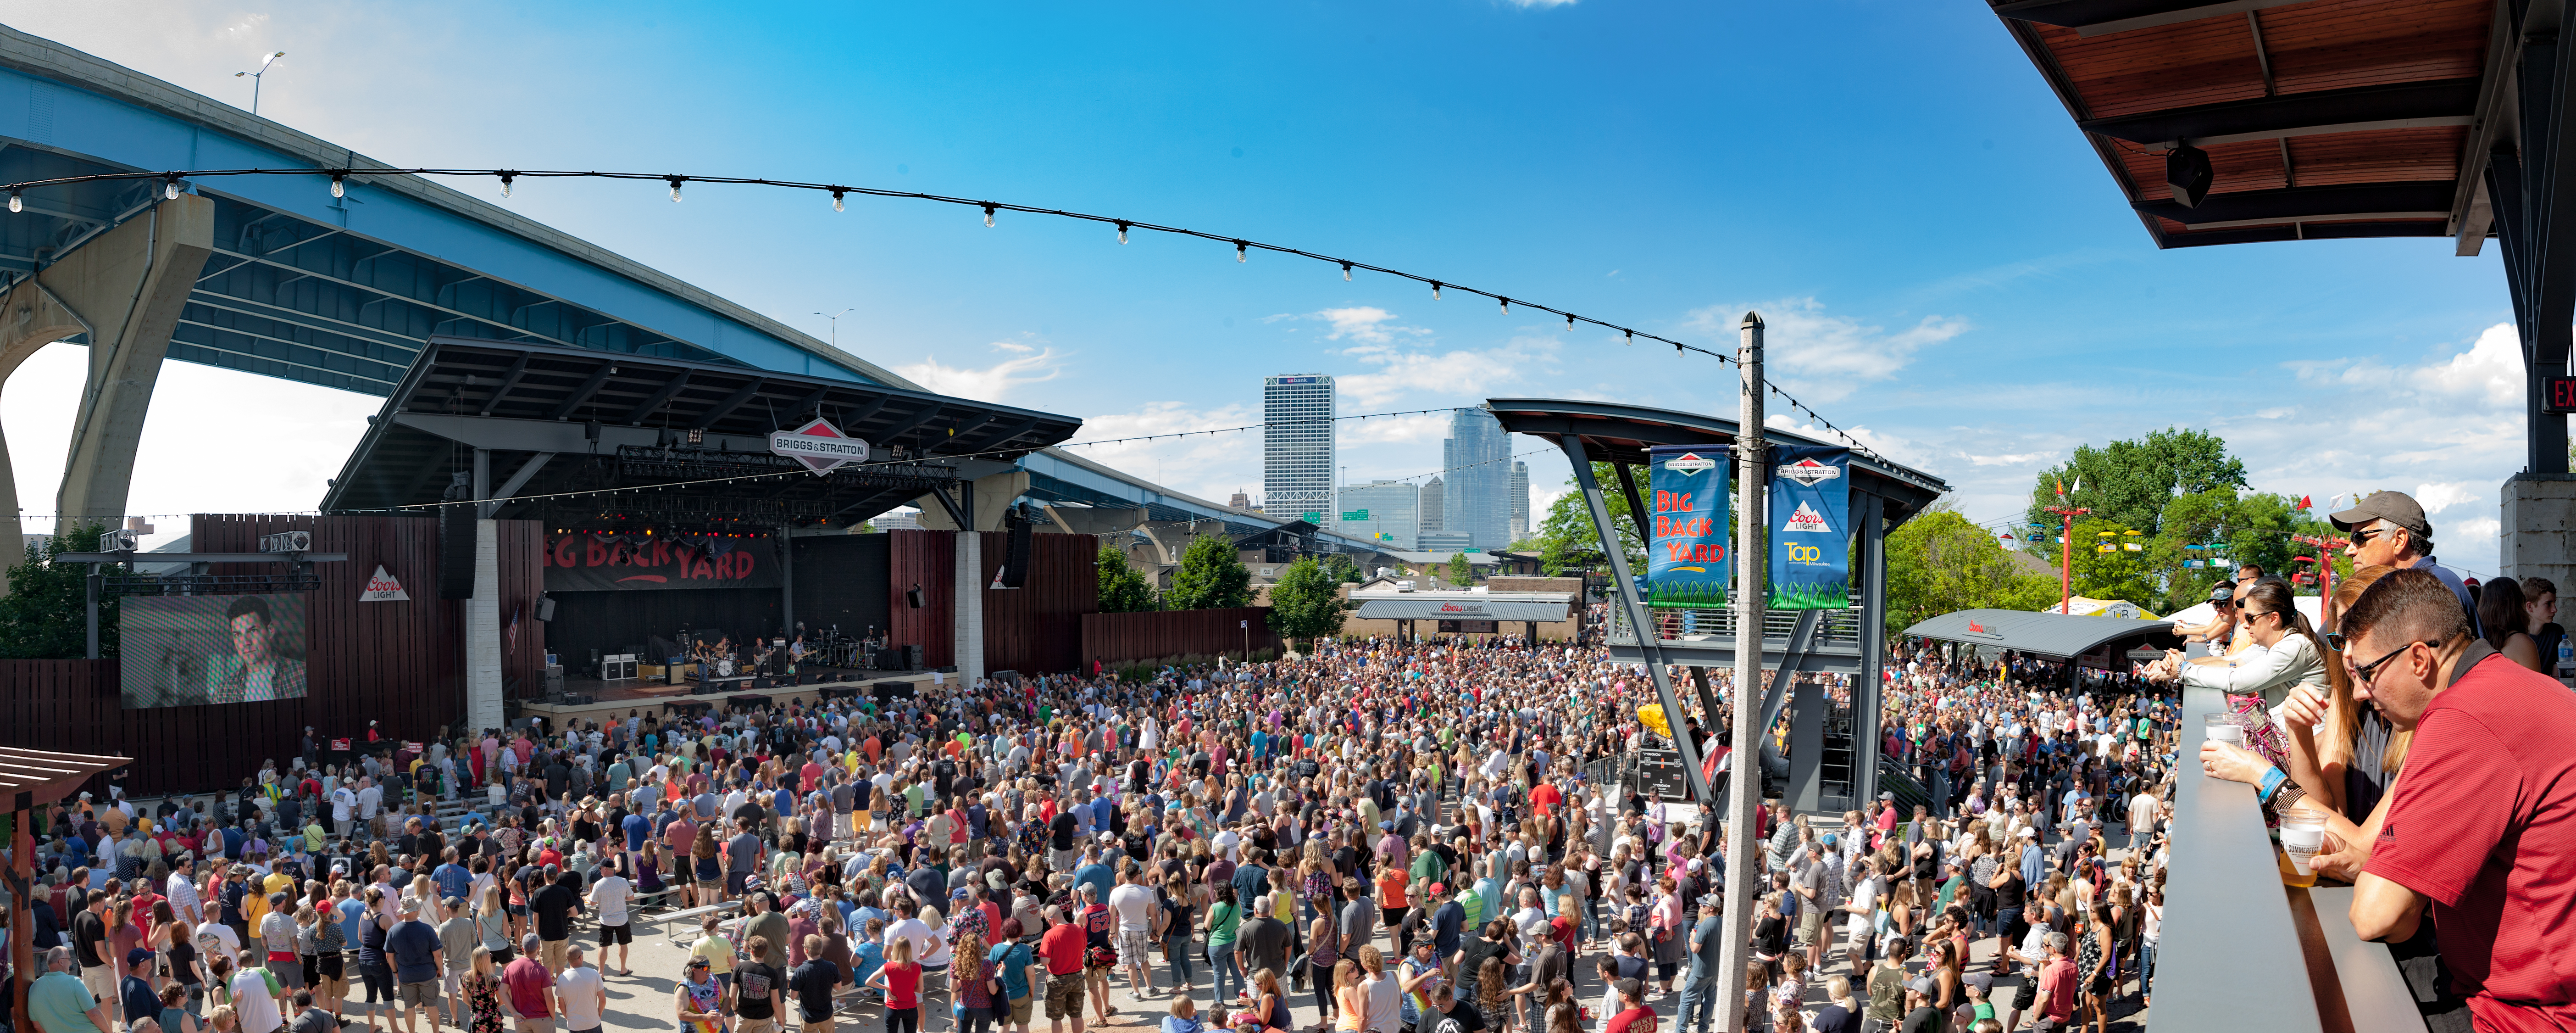 Crowds of people gather for an outdoor concert at Summerfest in Milwaukee, Wisconsin